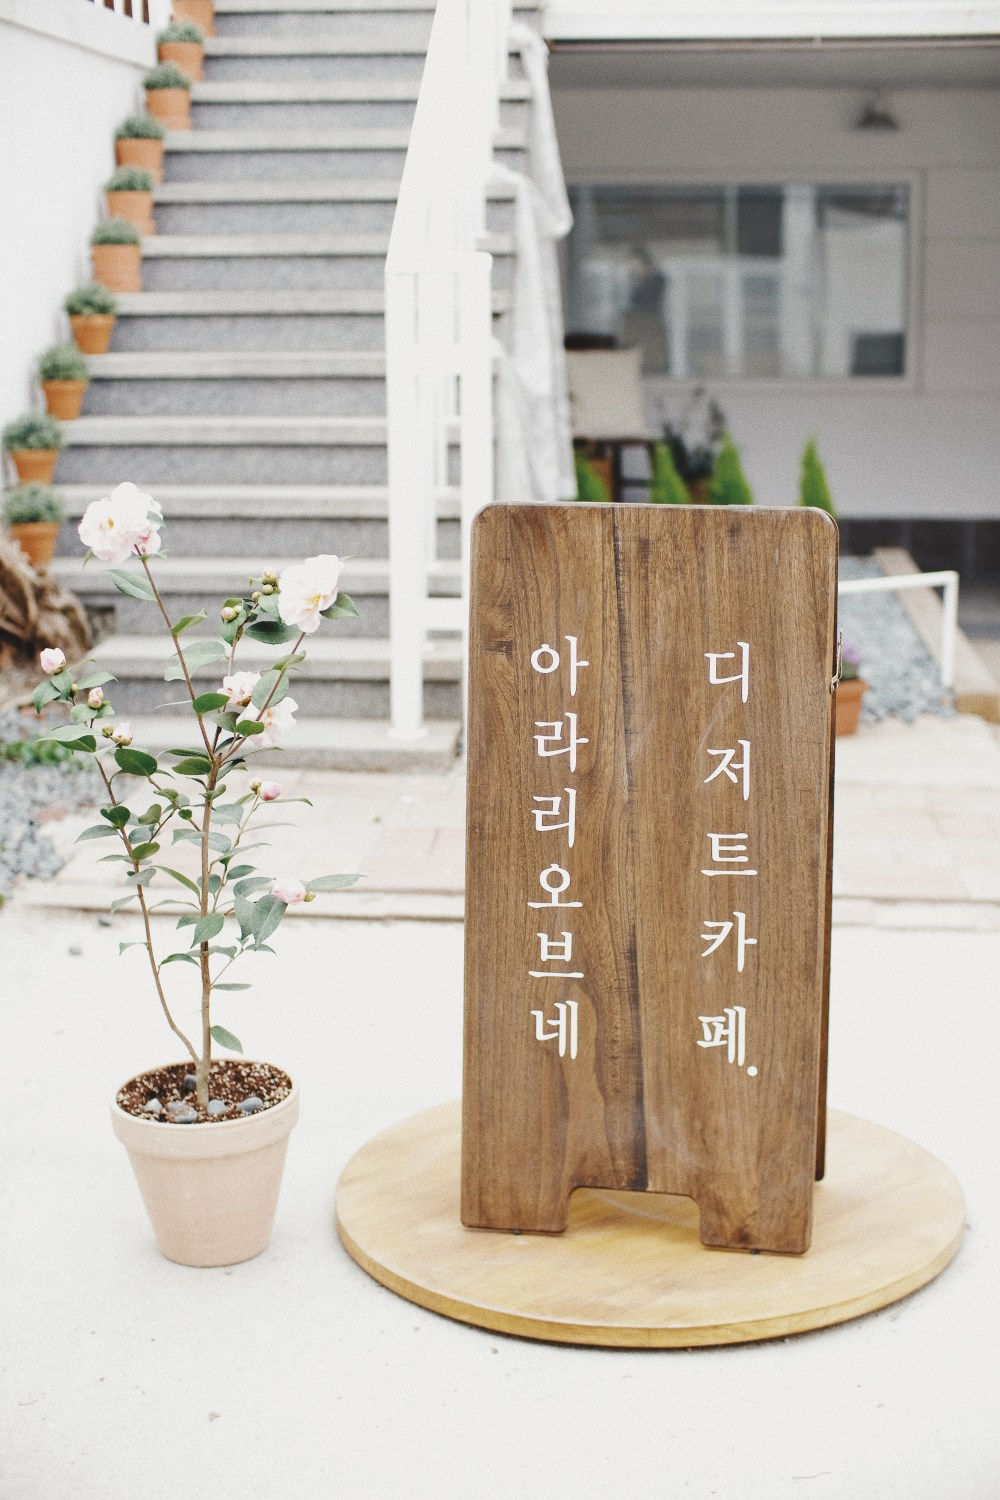 Arari Ovene Cafe Yeonnamdong Seoul South Korea | Photographer